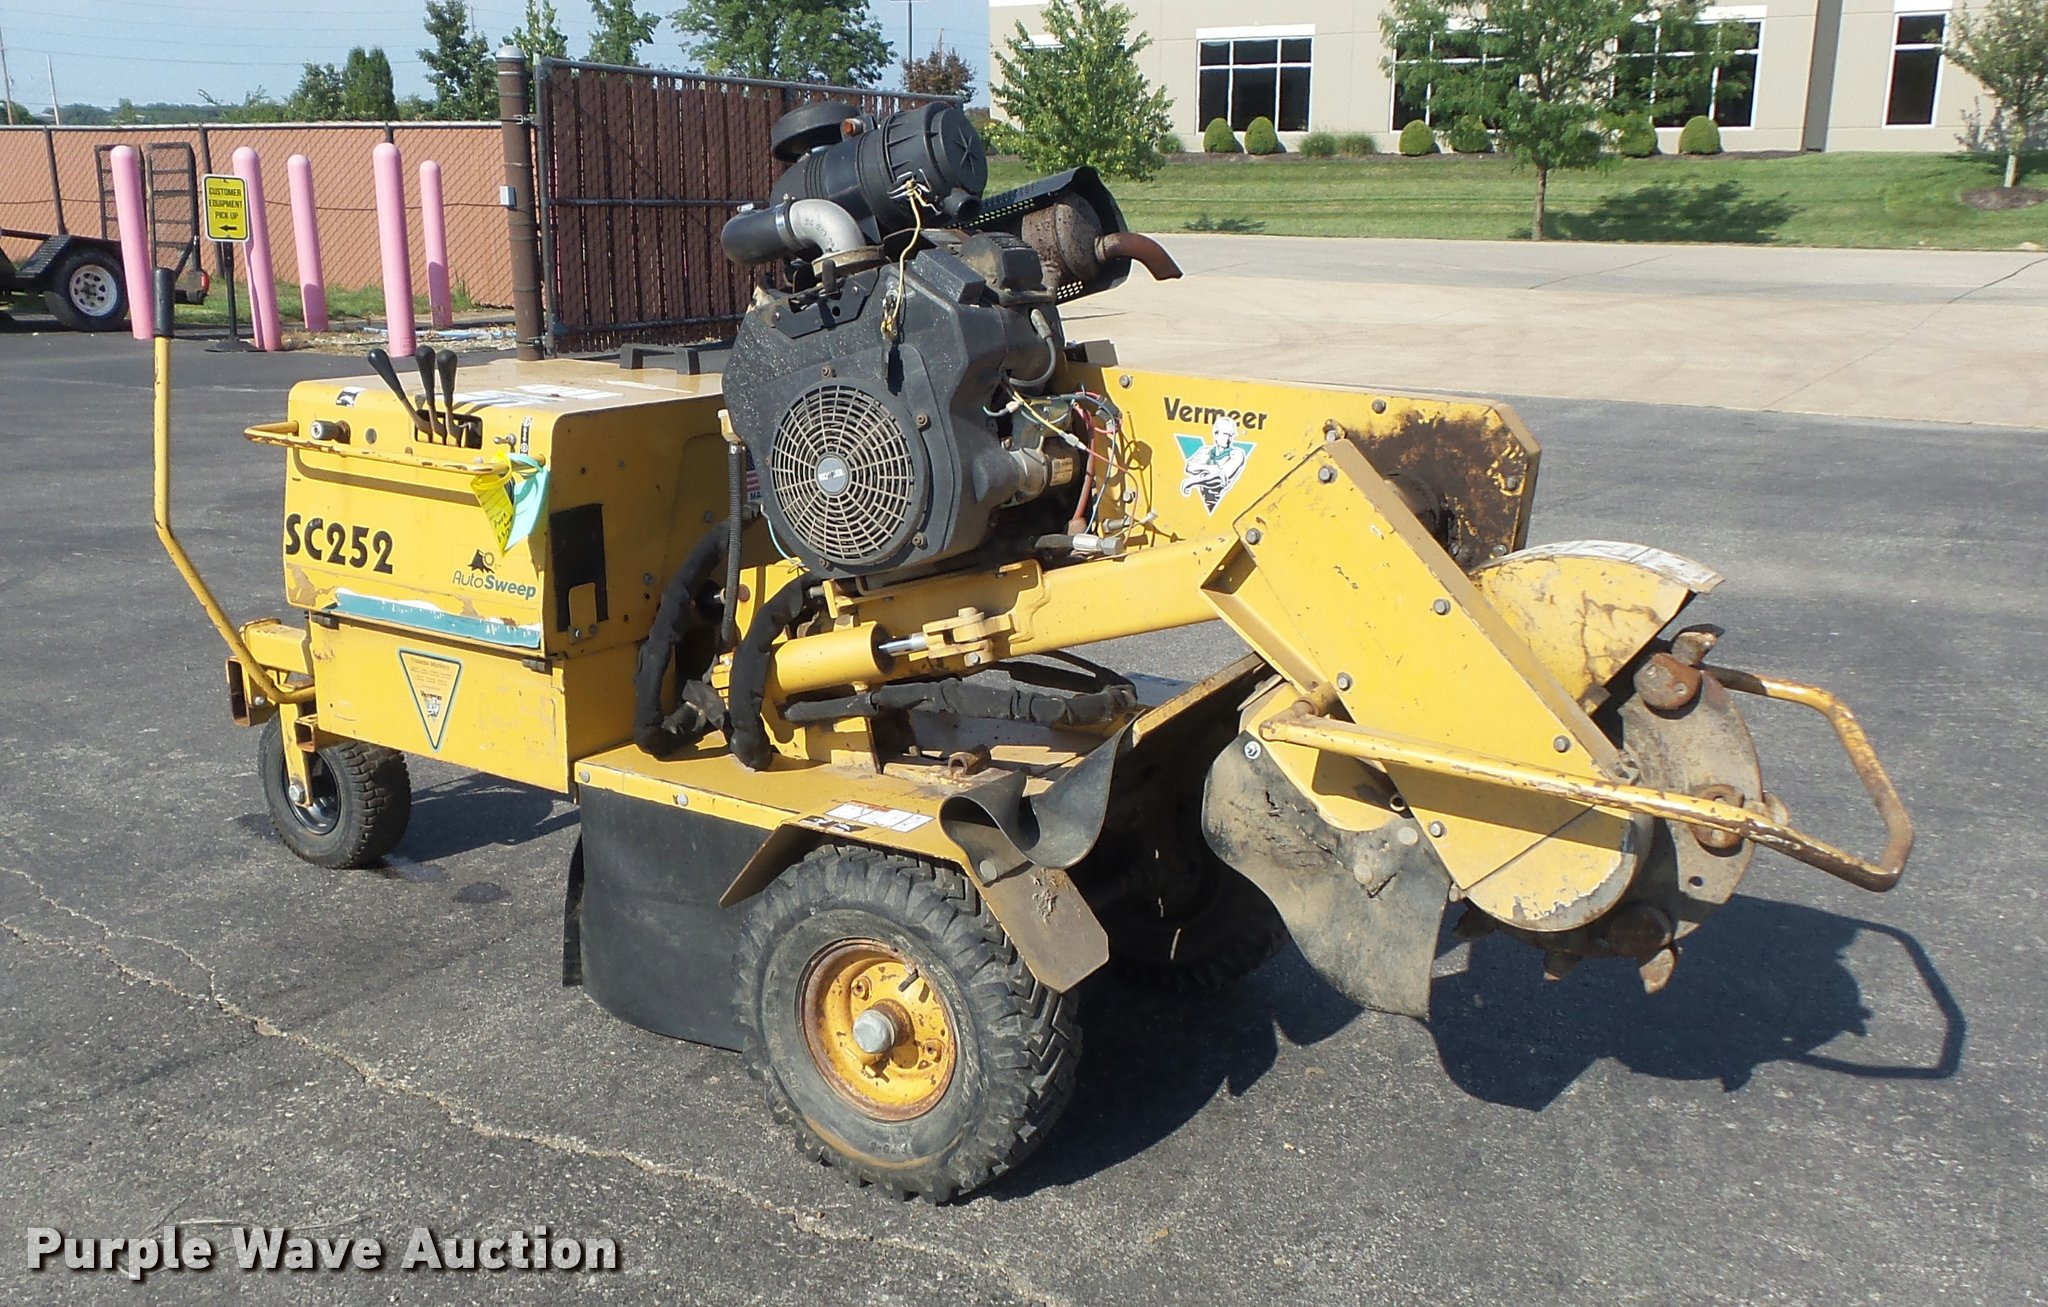 Vermeer Stump Grinder For Sale >> 2001 Vermeer Sc252 Stump Grinder Item K7504 Sold Septem